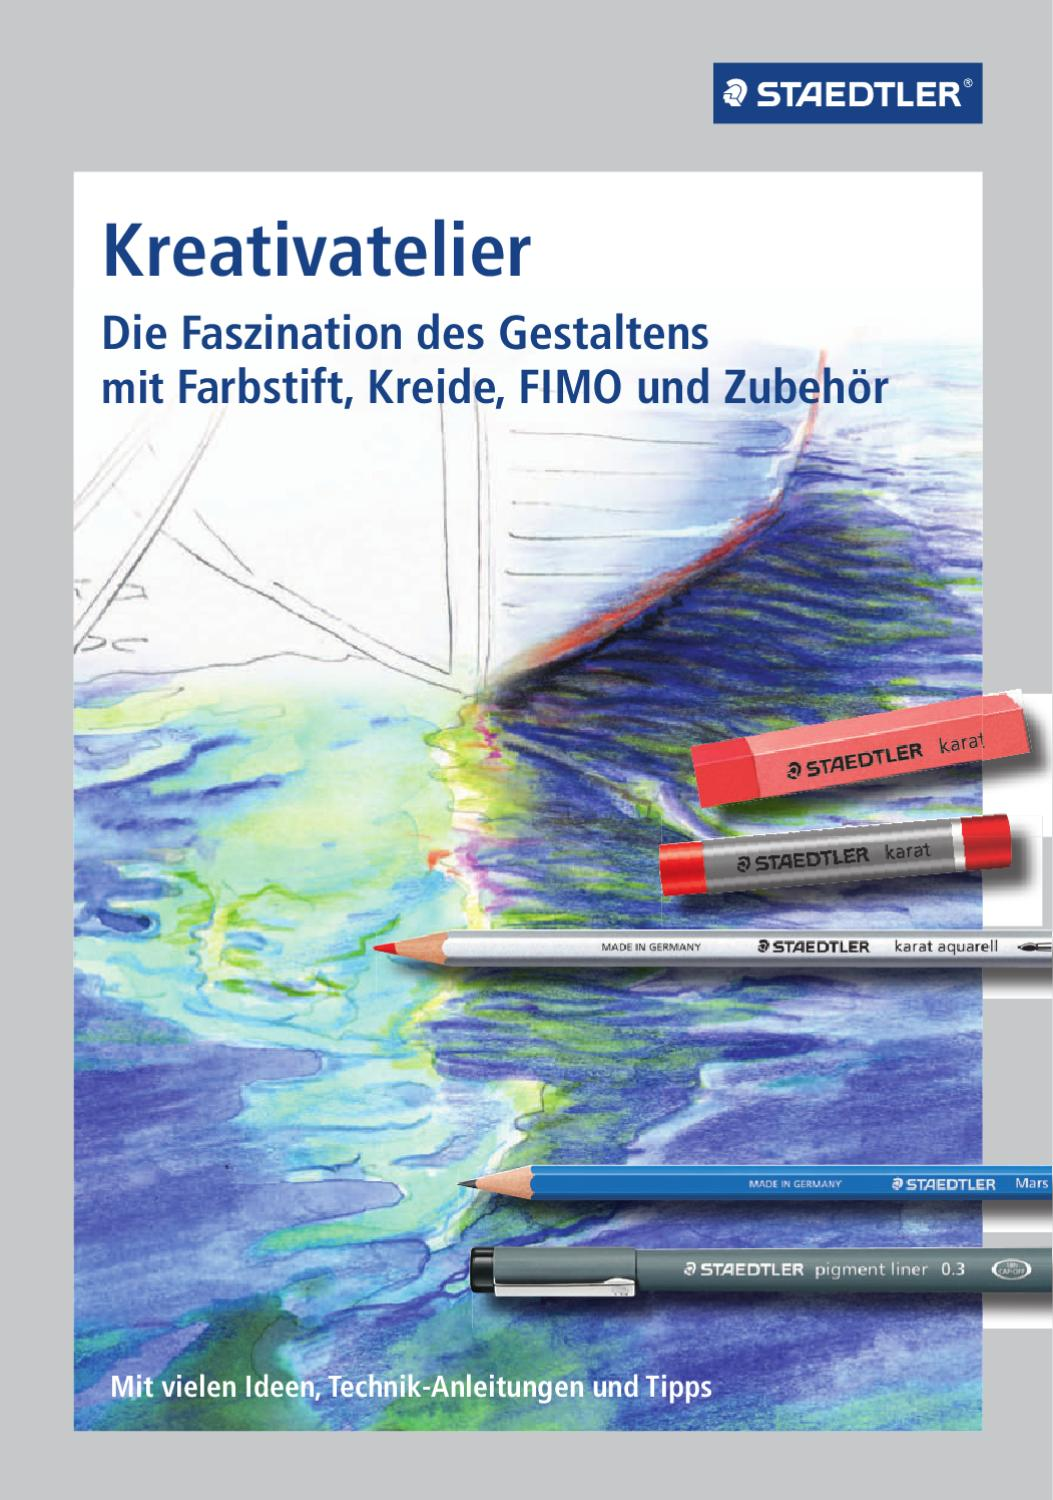 STAEDTLER Kreativatelier by STAEDTLER Mars GmbH & Co. KG - issuu